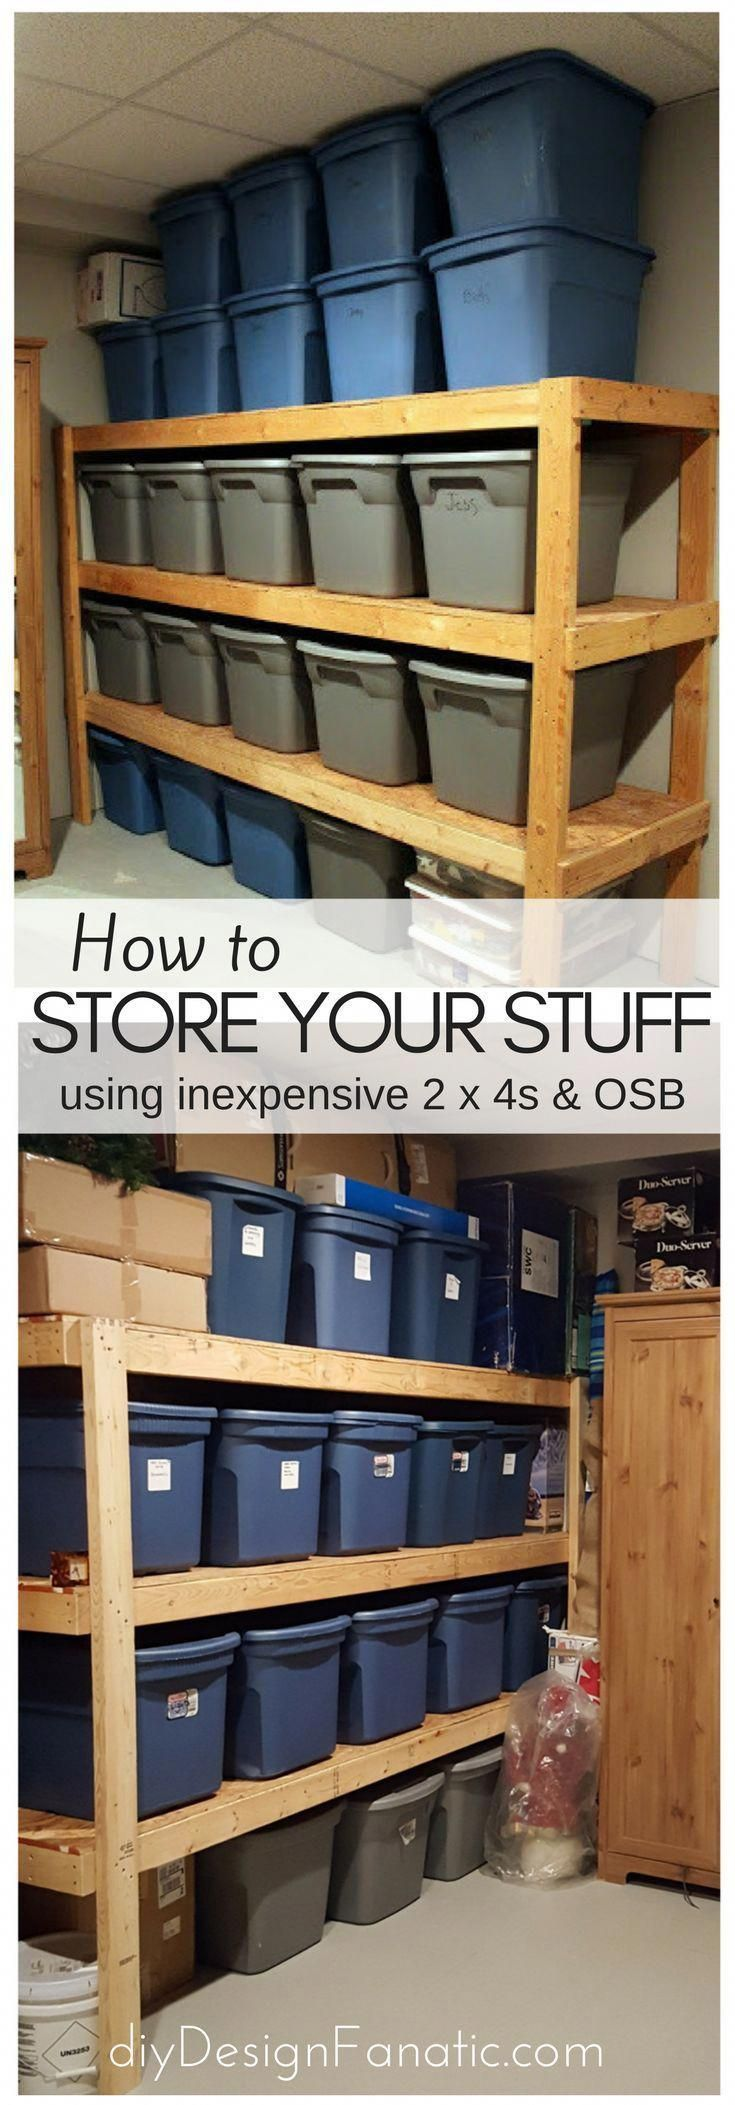 How to store your stuff using inexpensives shelving. Diy